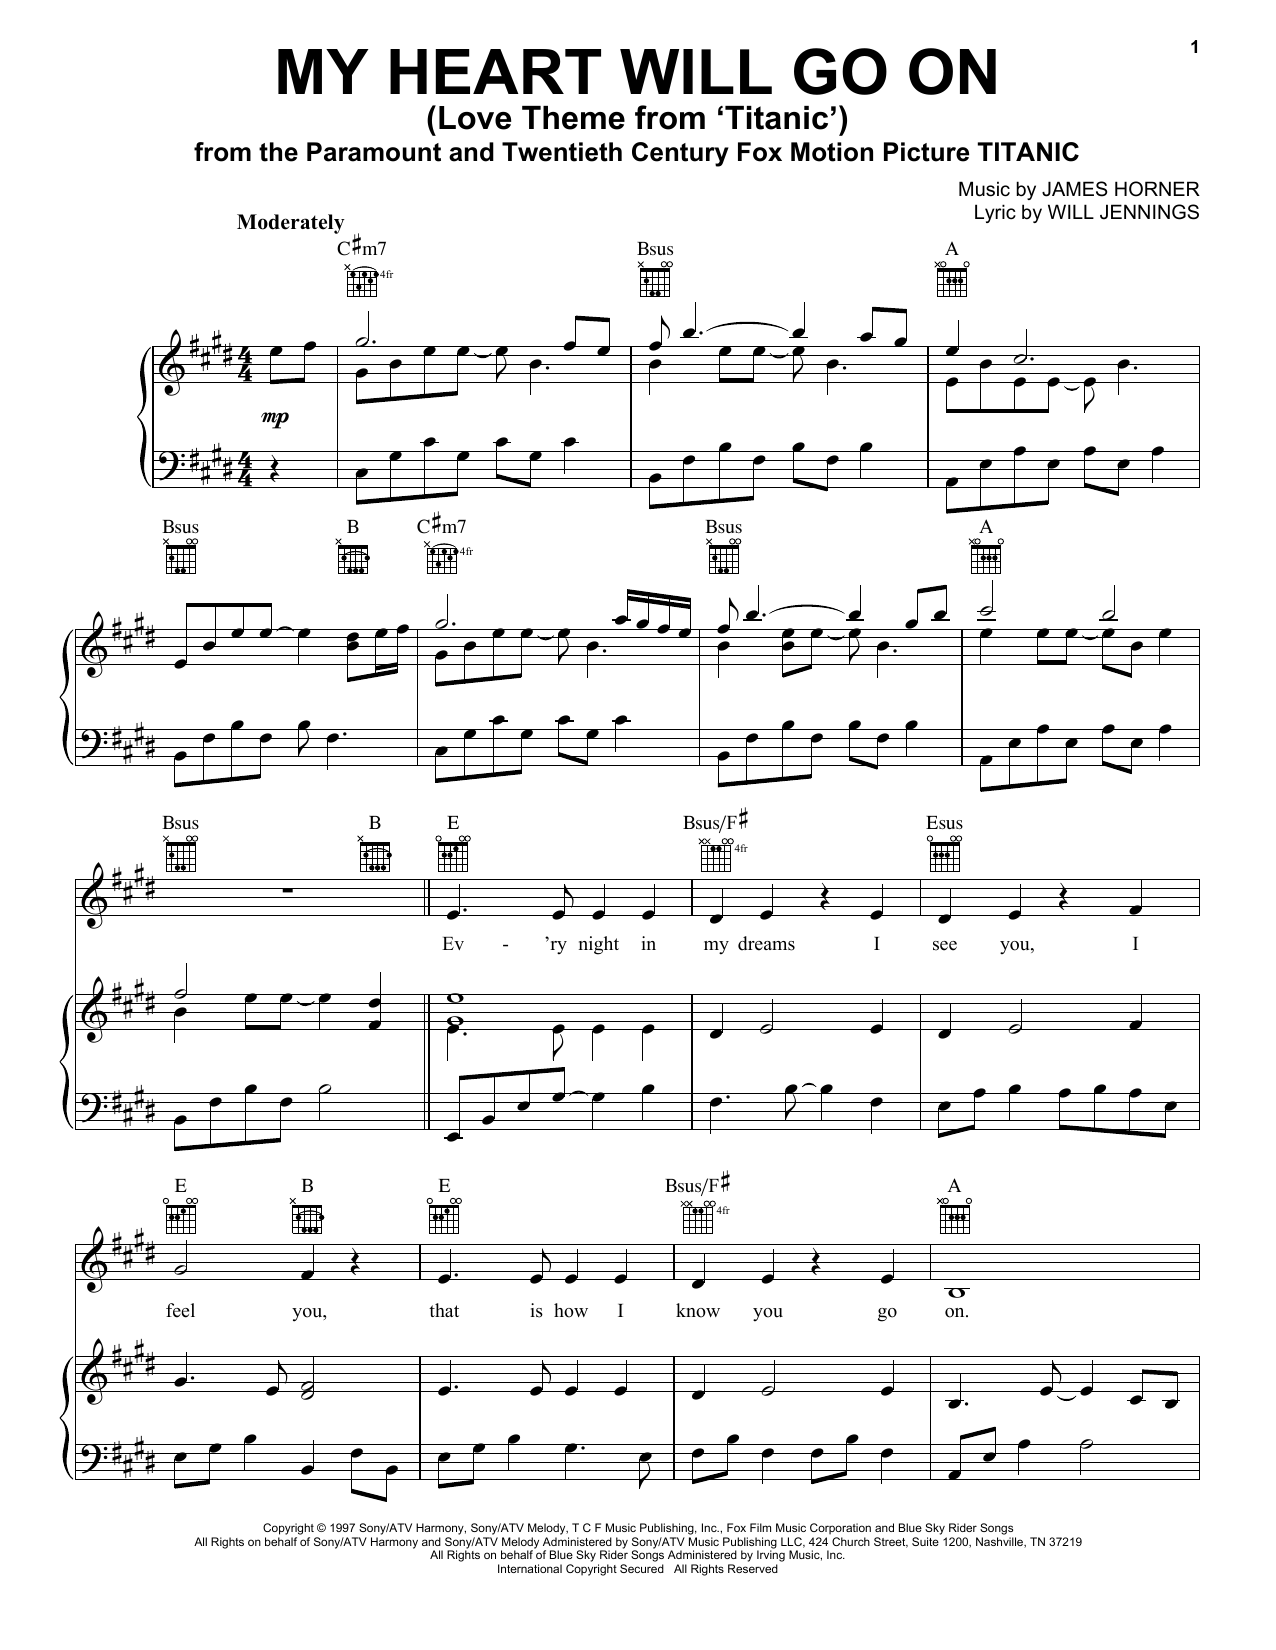 Celine Dion My Heart Will Go On (Love Theme from Titanic) sheet music notes and chords. Download Printable PDF.